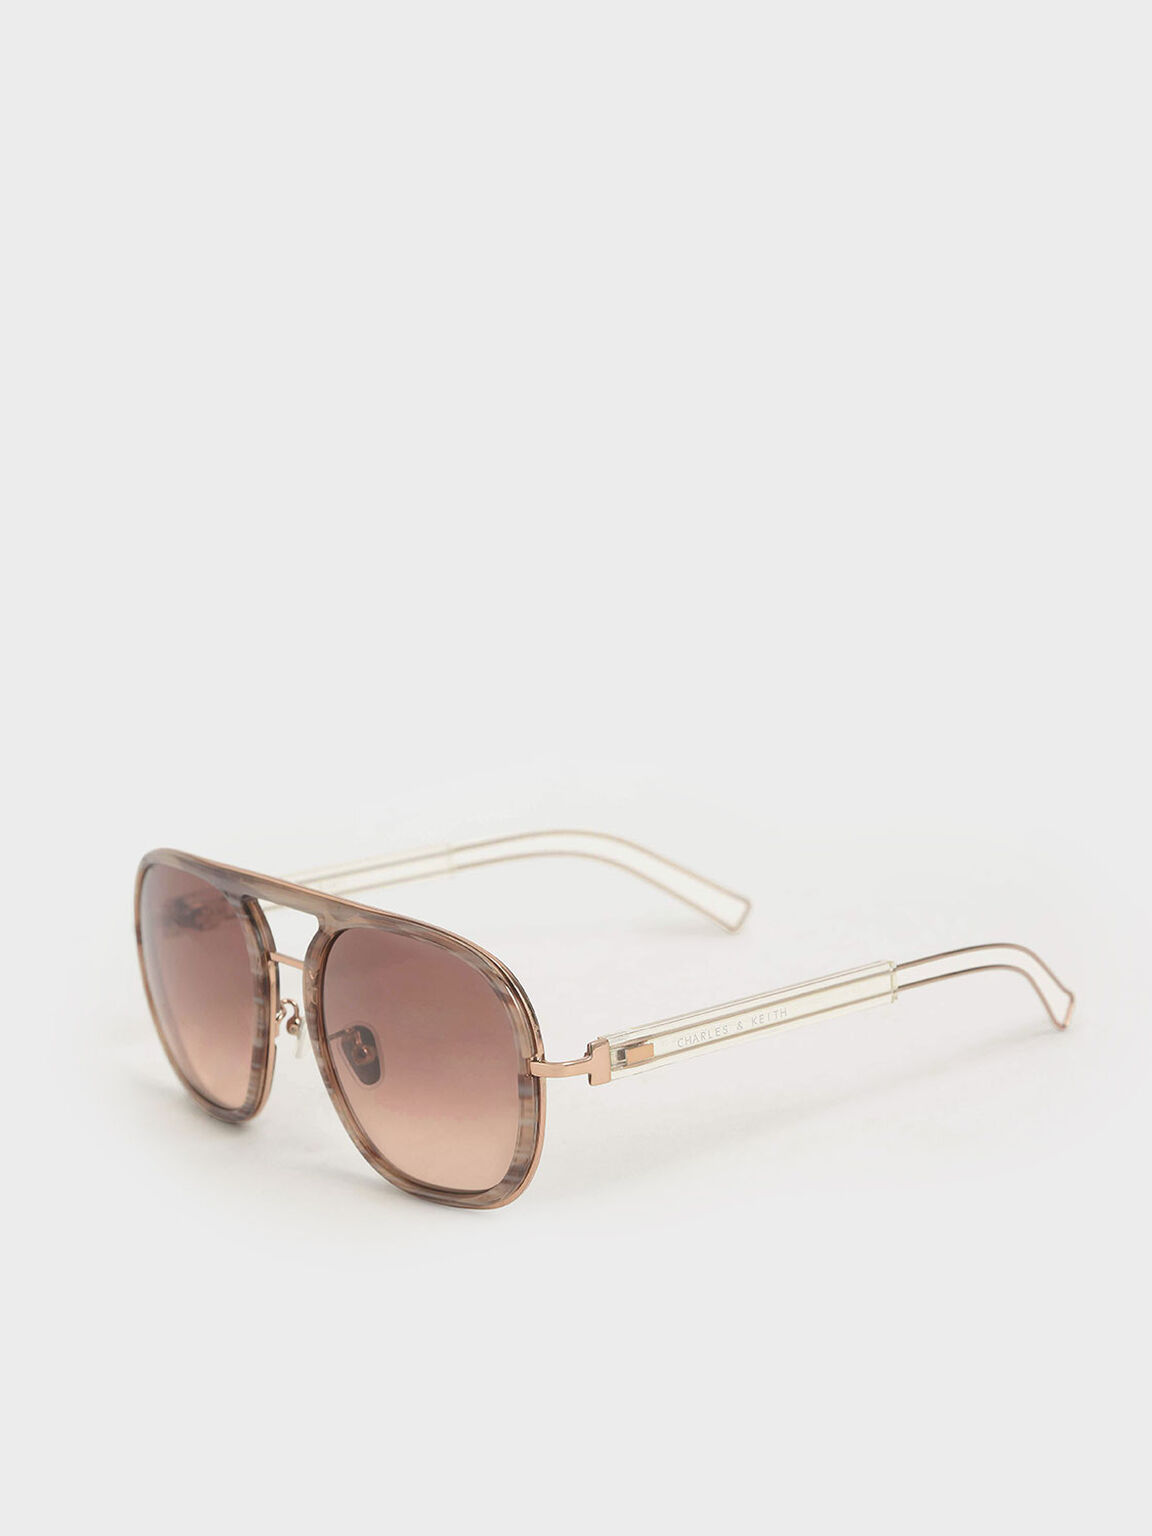 Double Bridge Sunglasses, Cream, hi-res